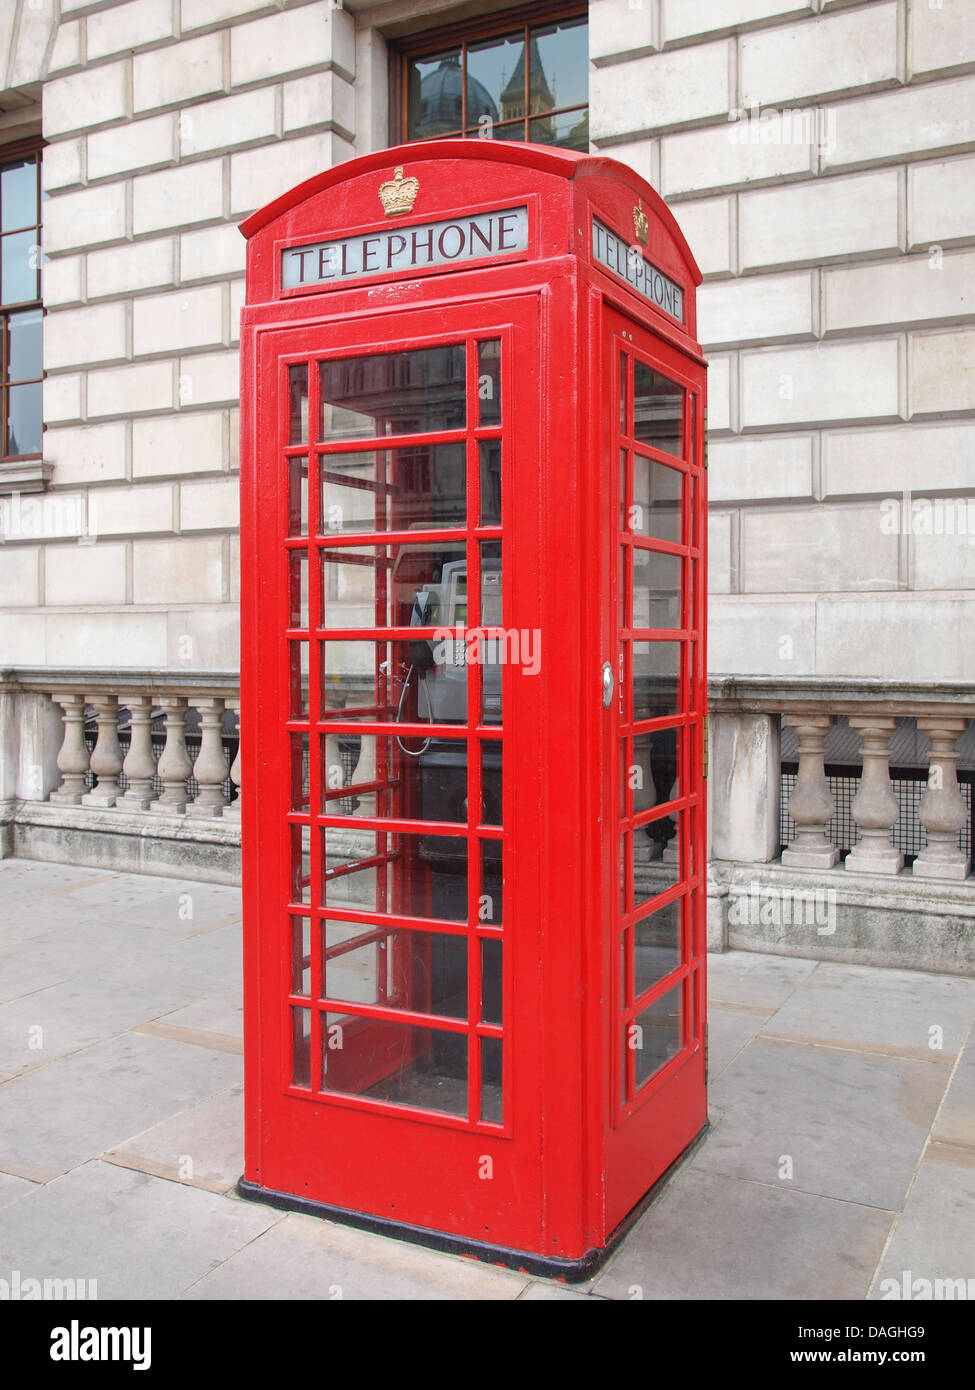 Traditional red telephone box in London UK - Stock Image